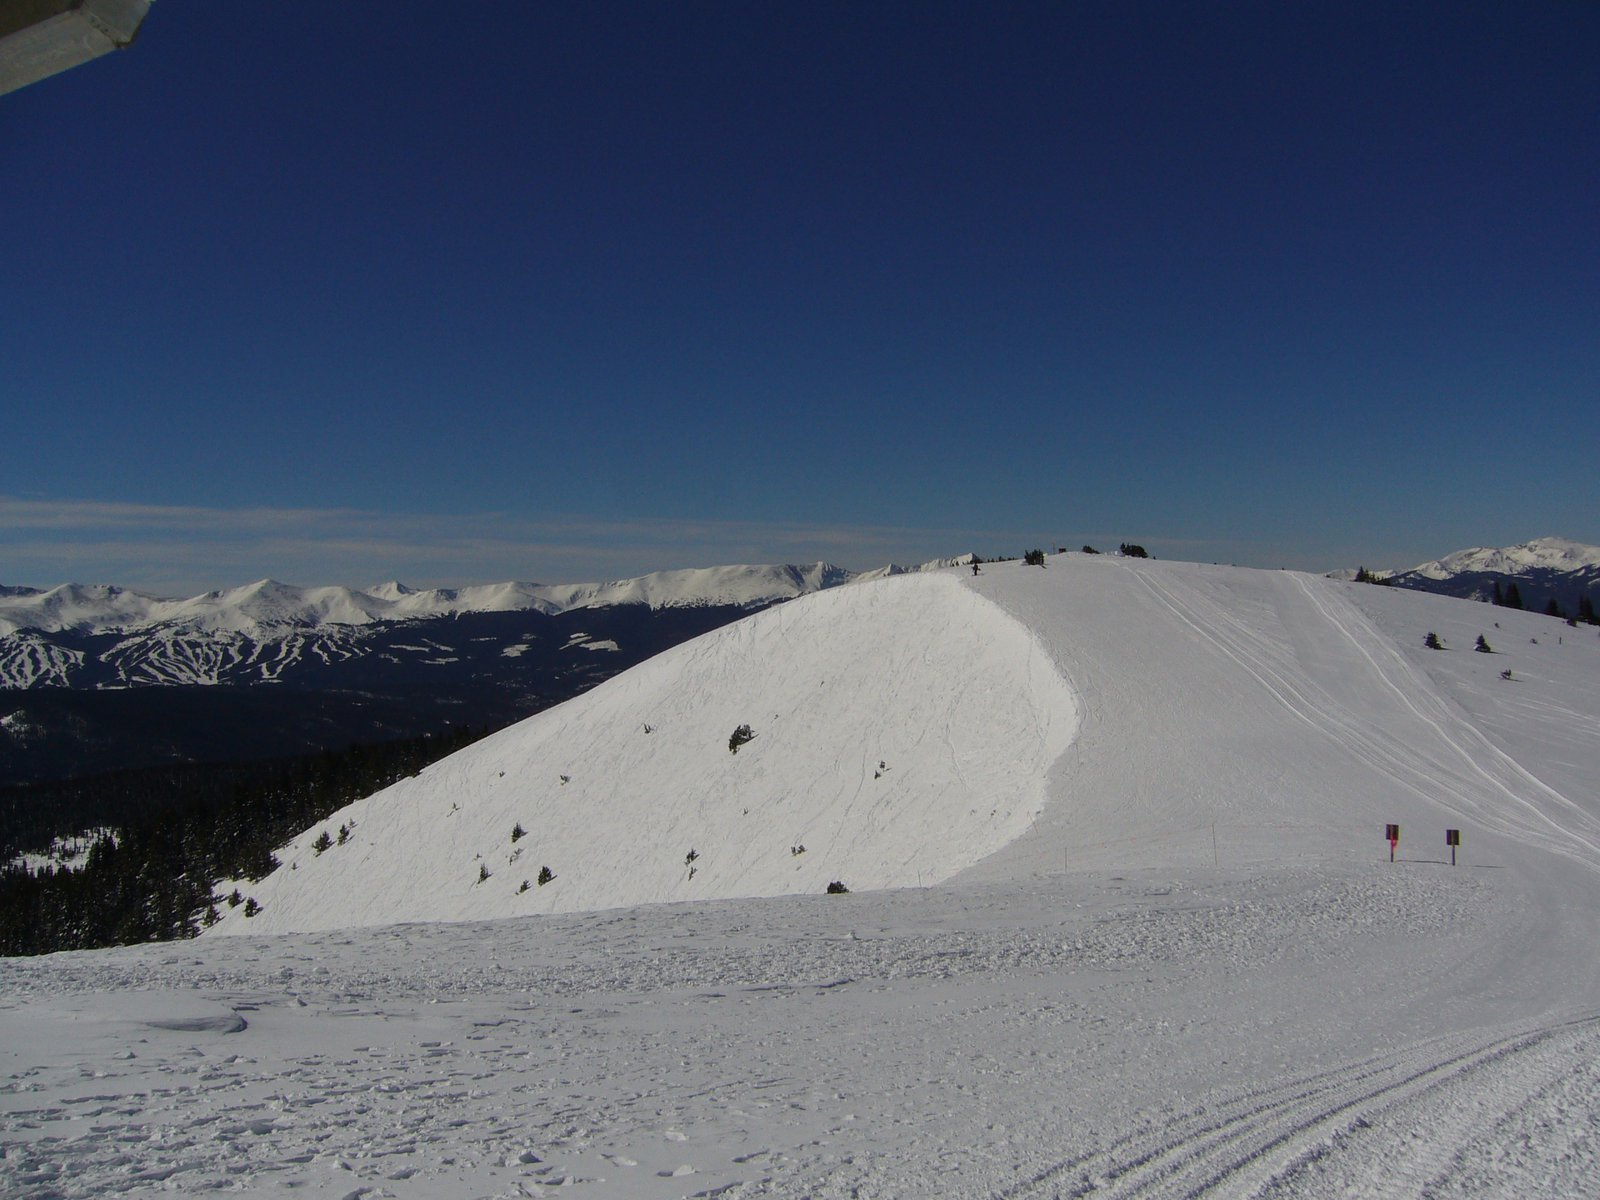 South Bowl at keystone